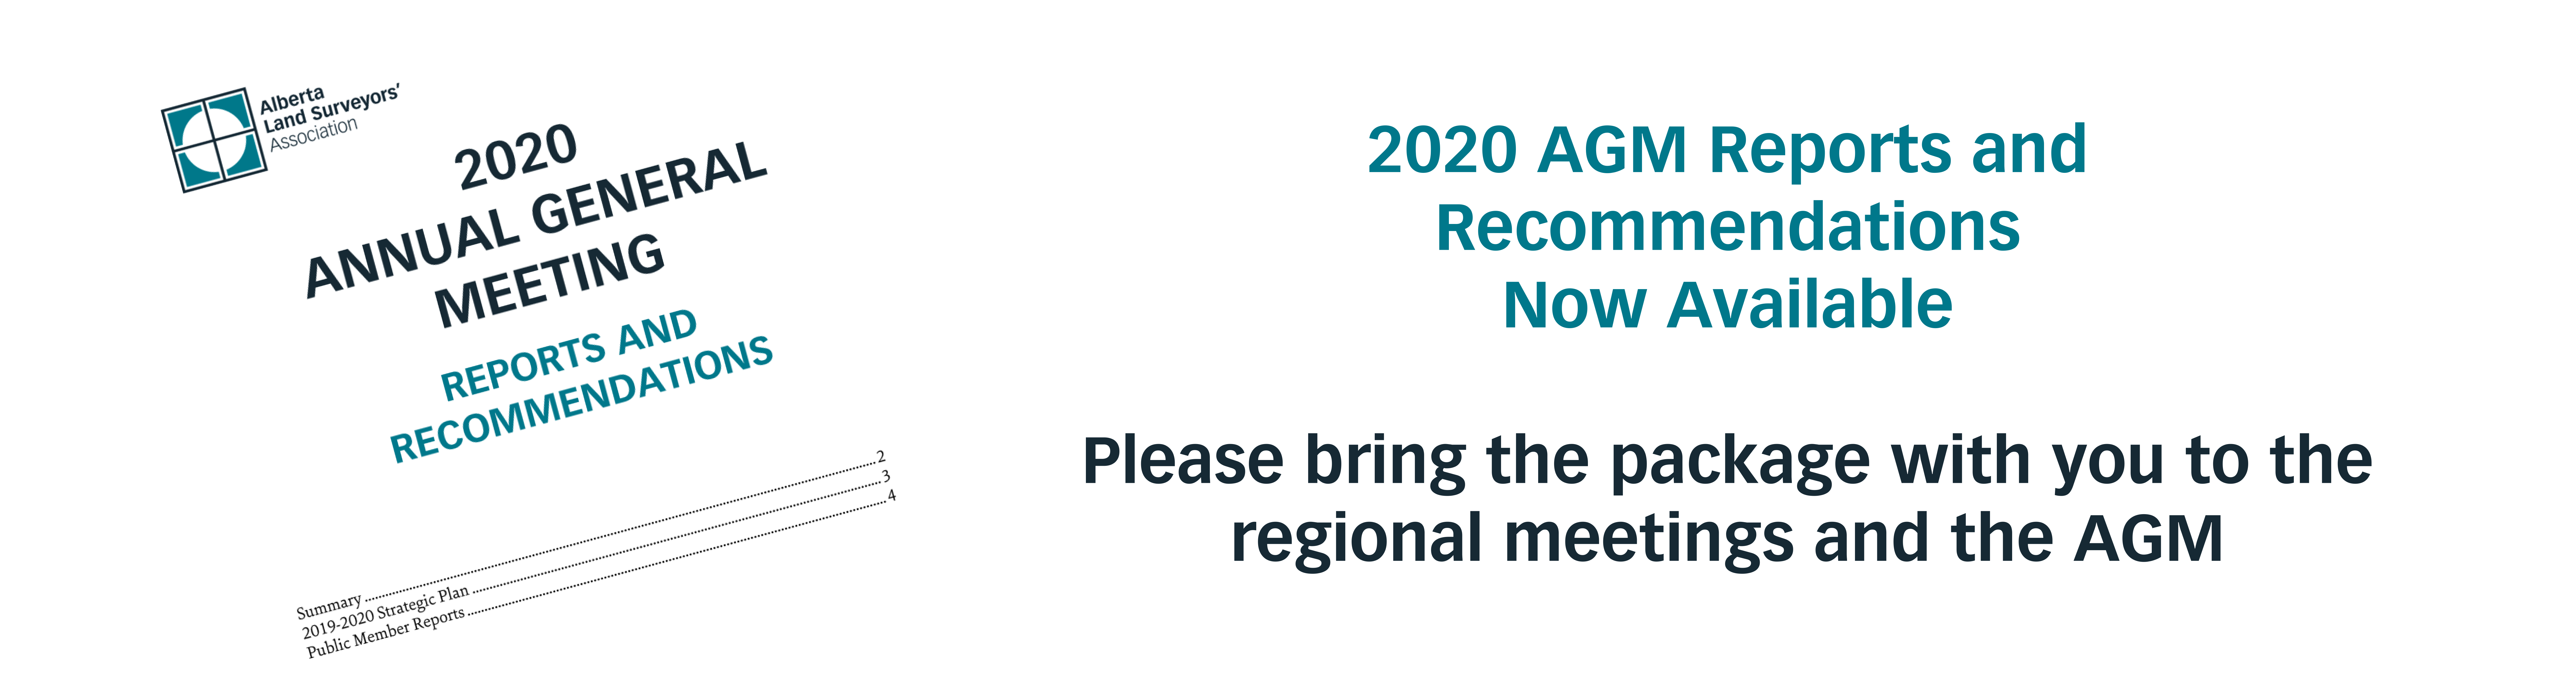 2020 Reports and Recommendations